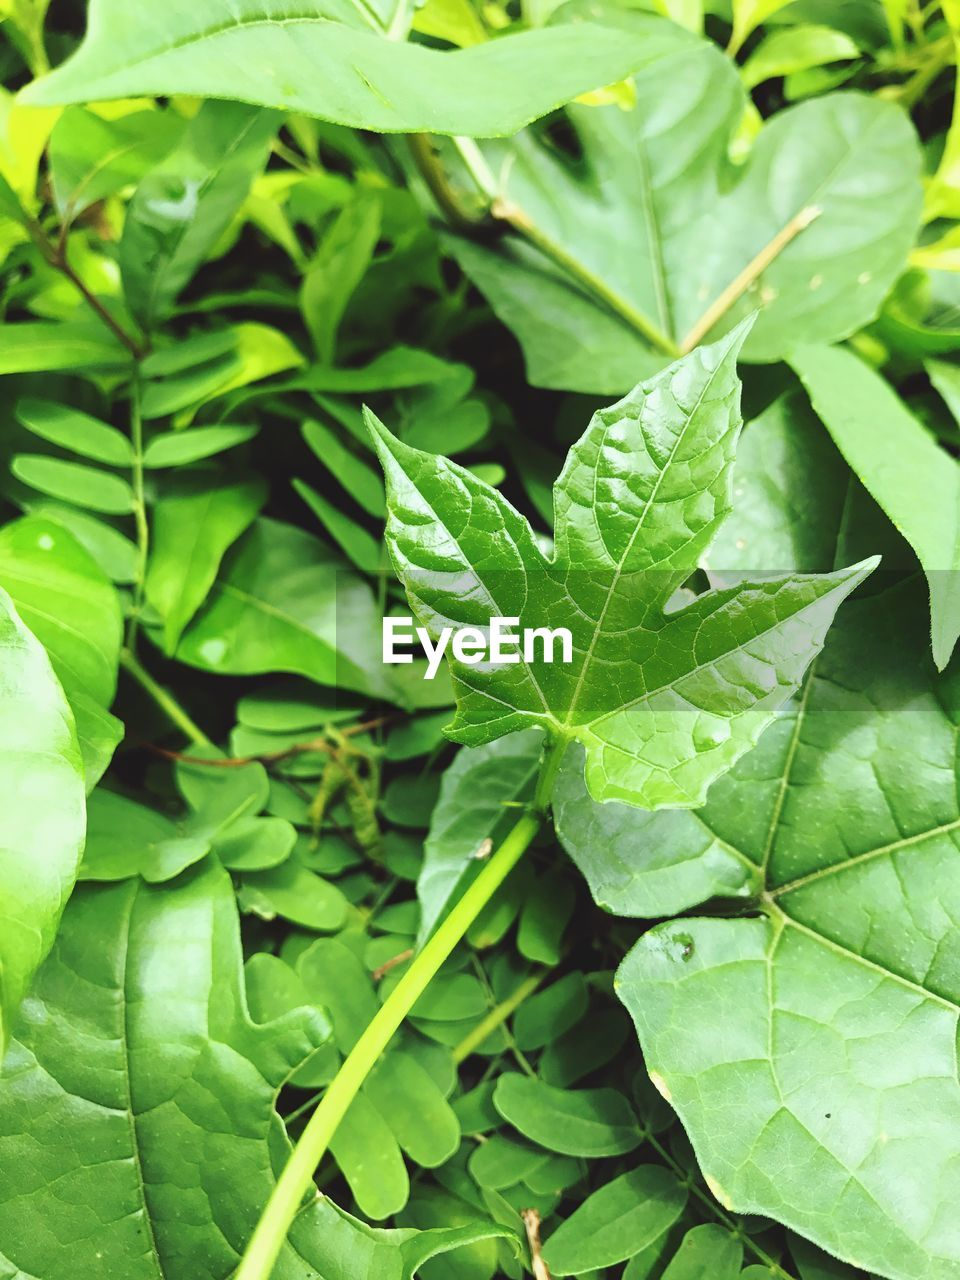 leaf, plant part, green color, growth, plant, nature, close-up, beauty in nature, no people, day, freshness, vegetable, food and drink, leaves, full frame, outdoors, high angle view, food, leaf vein, herb